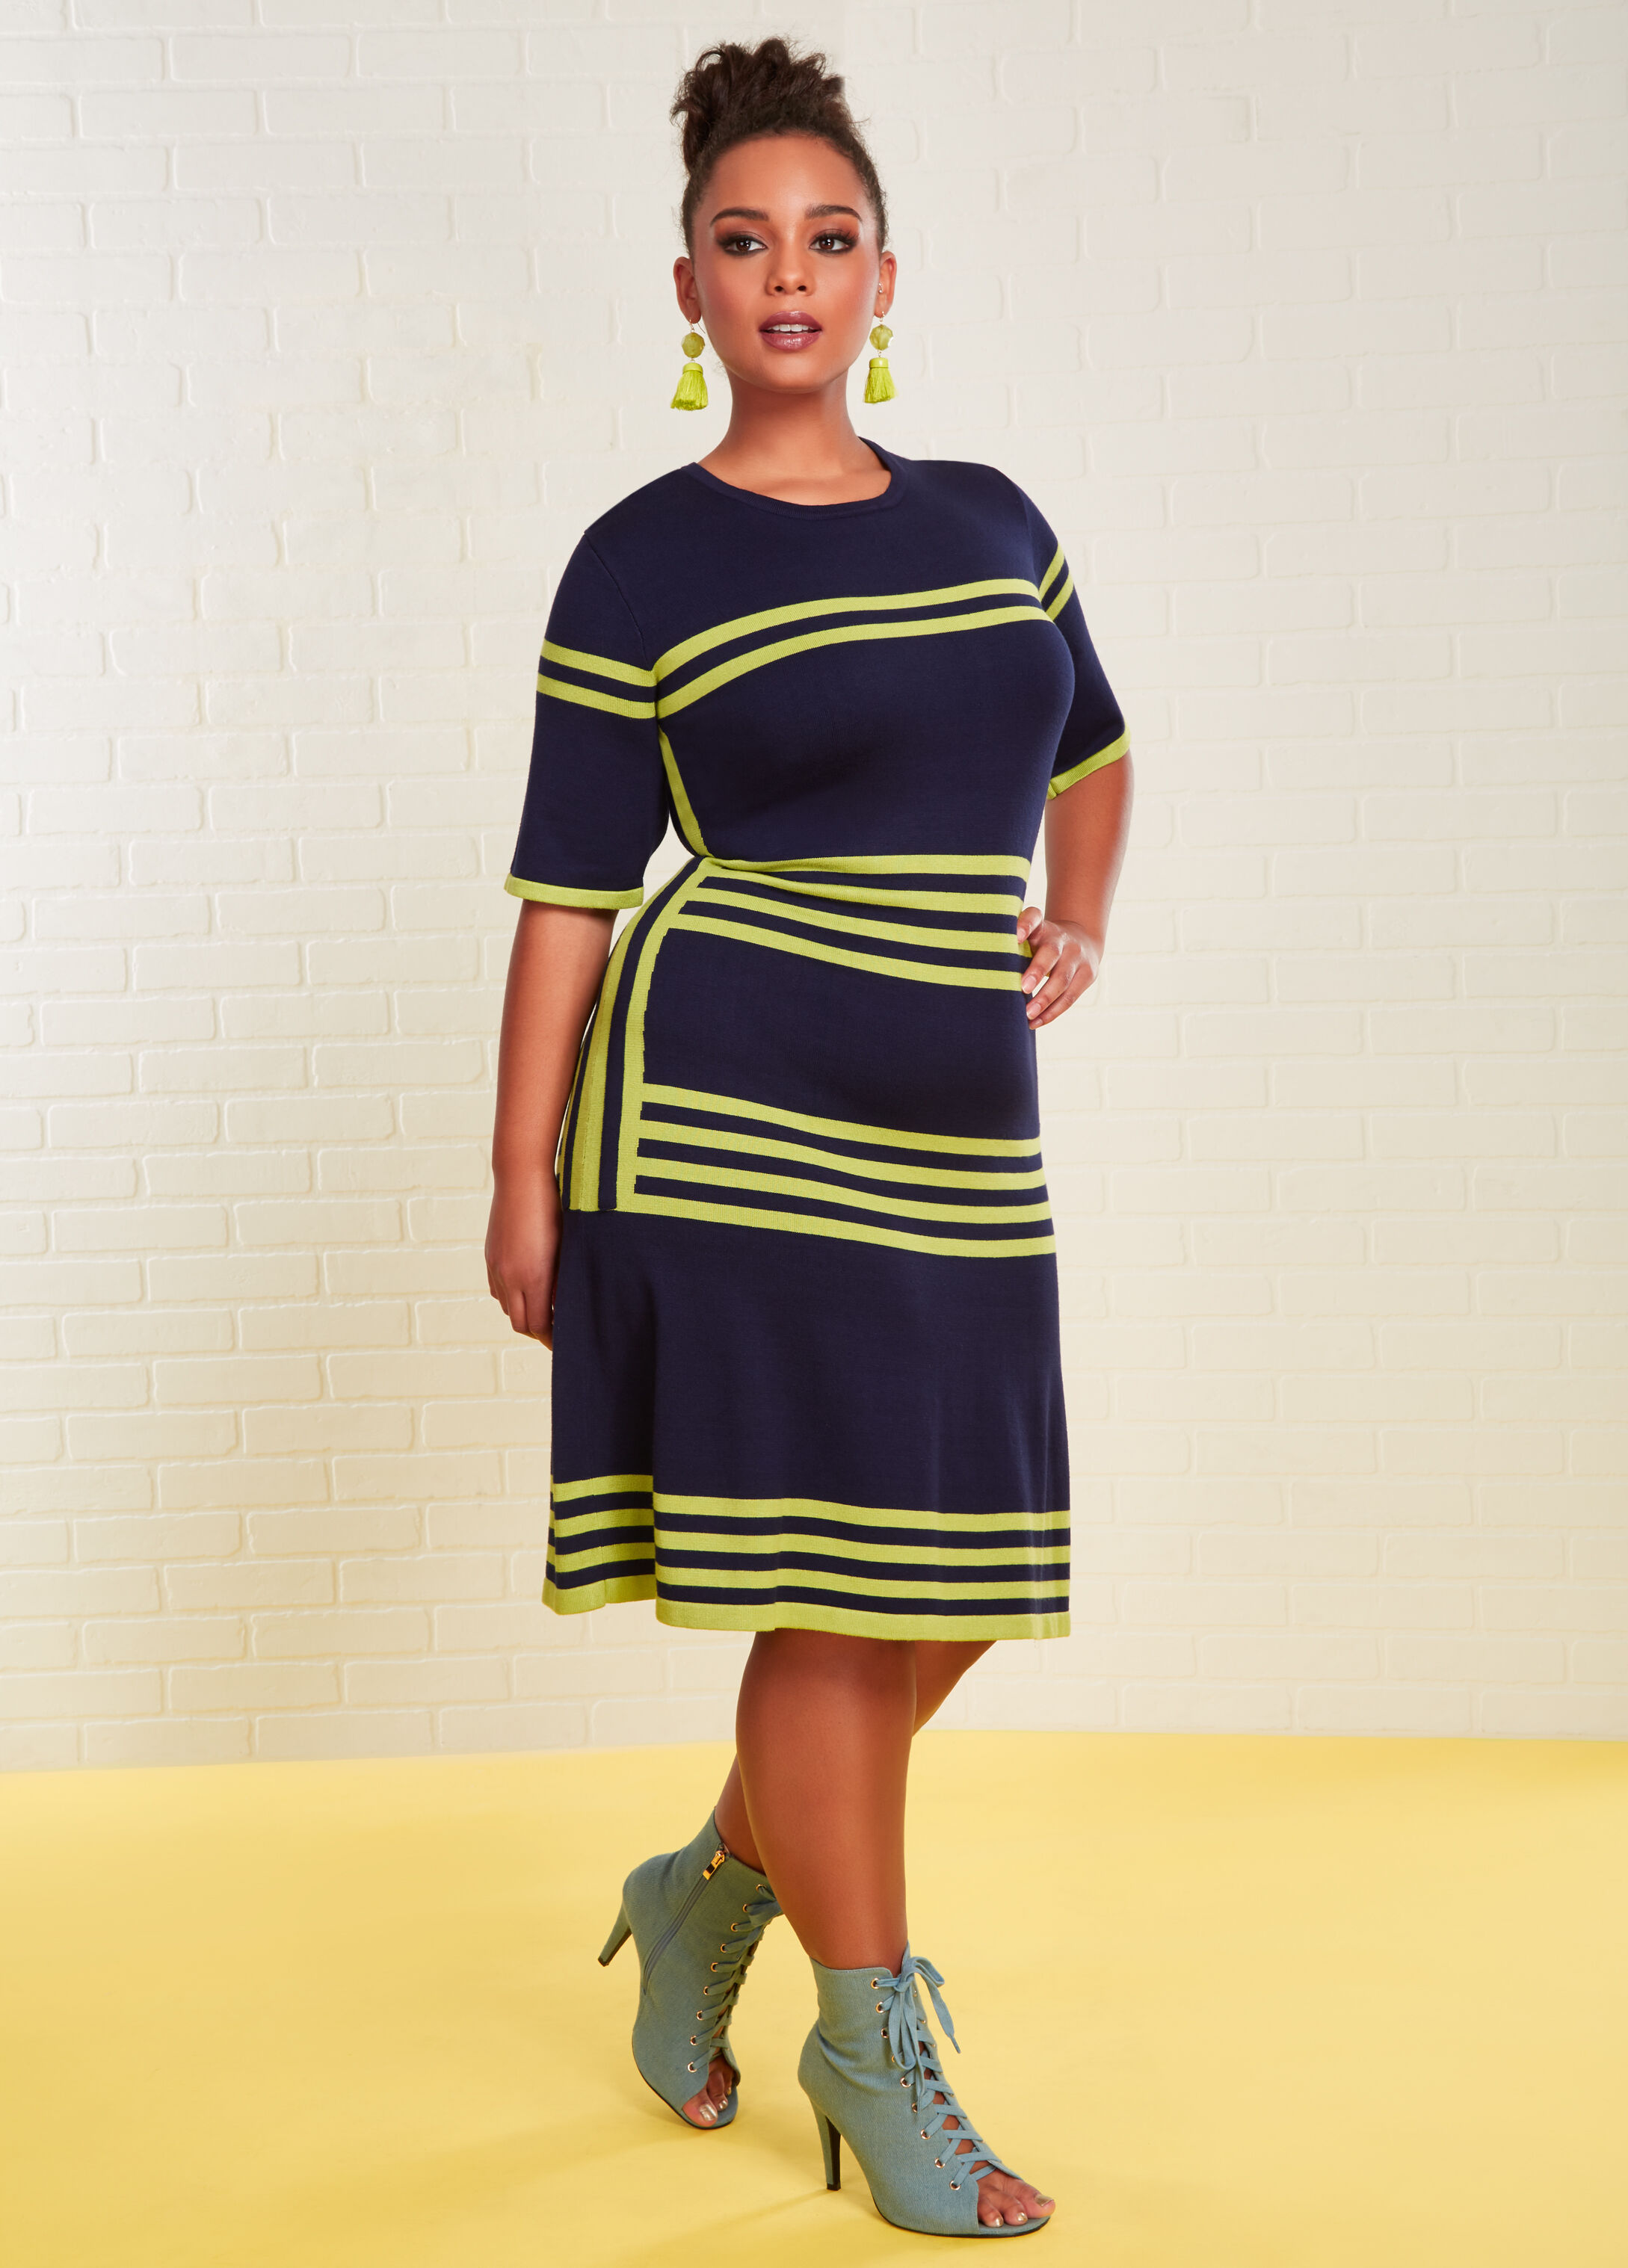 Plus Size Outfits - Colorblock Stripe Skater Dress with Denim Bootie